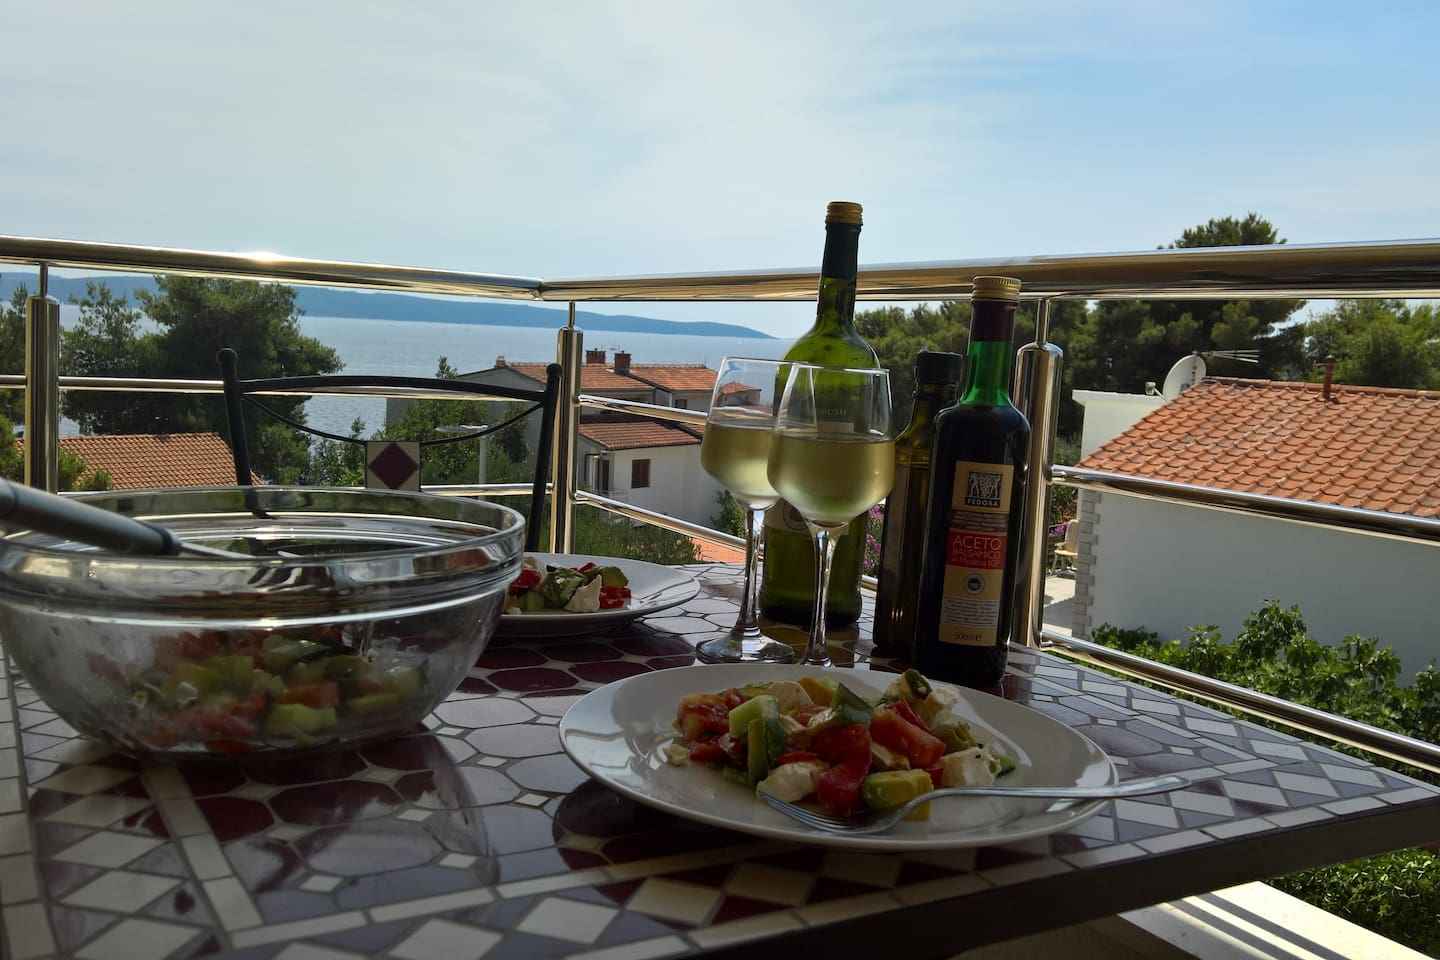 The view from the balcony. The wine, olive oil and vegetables are all sourced locally.